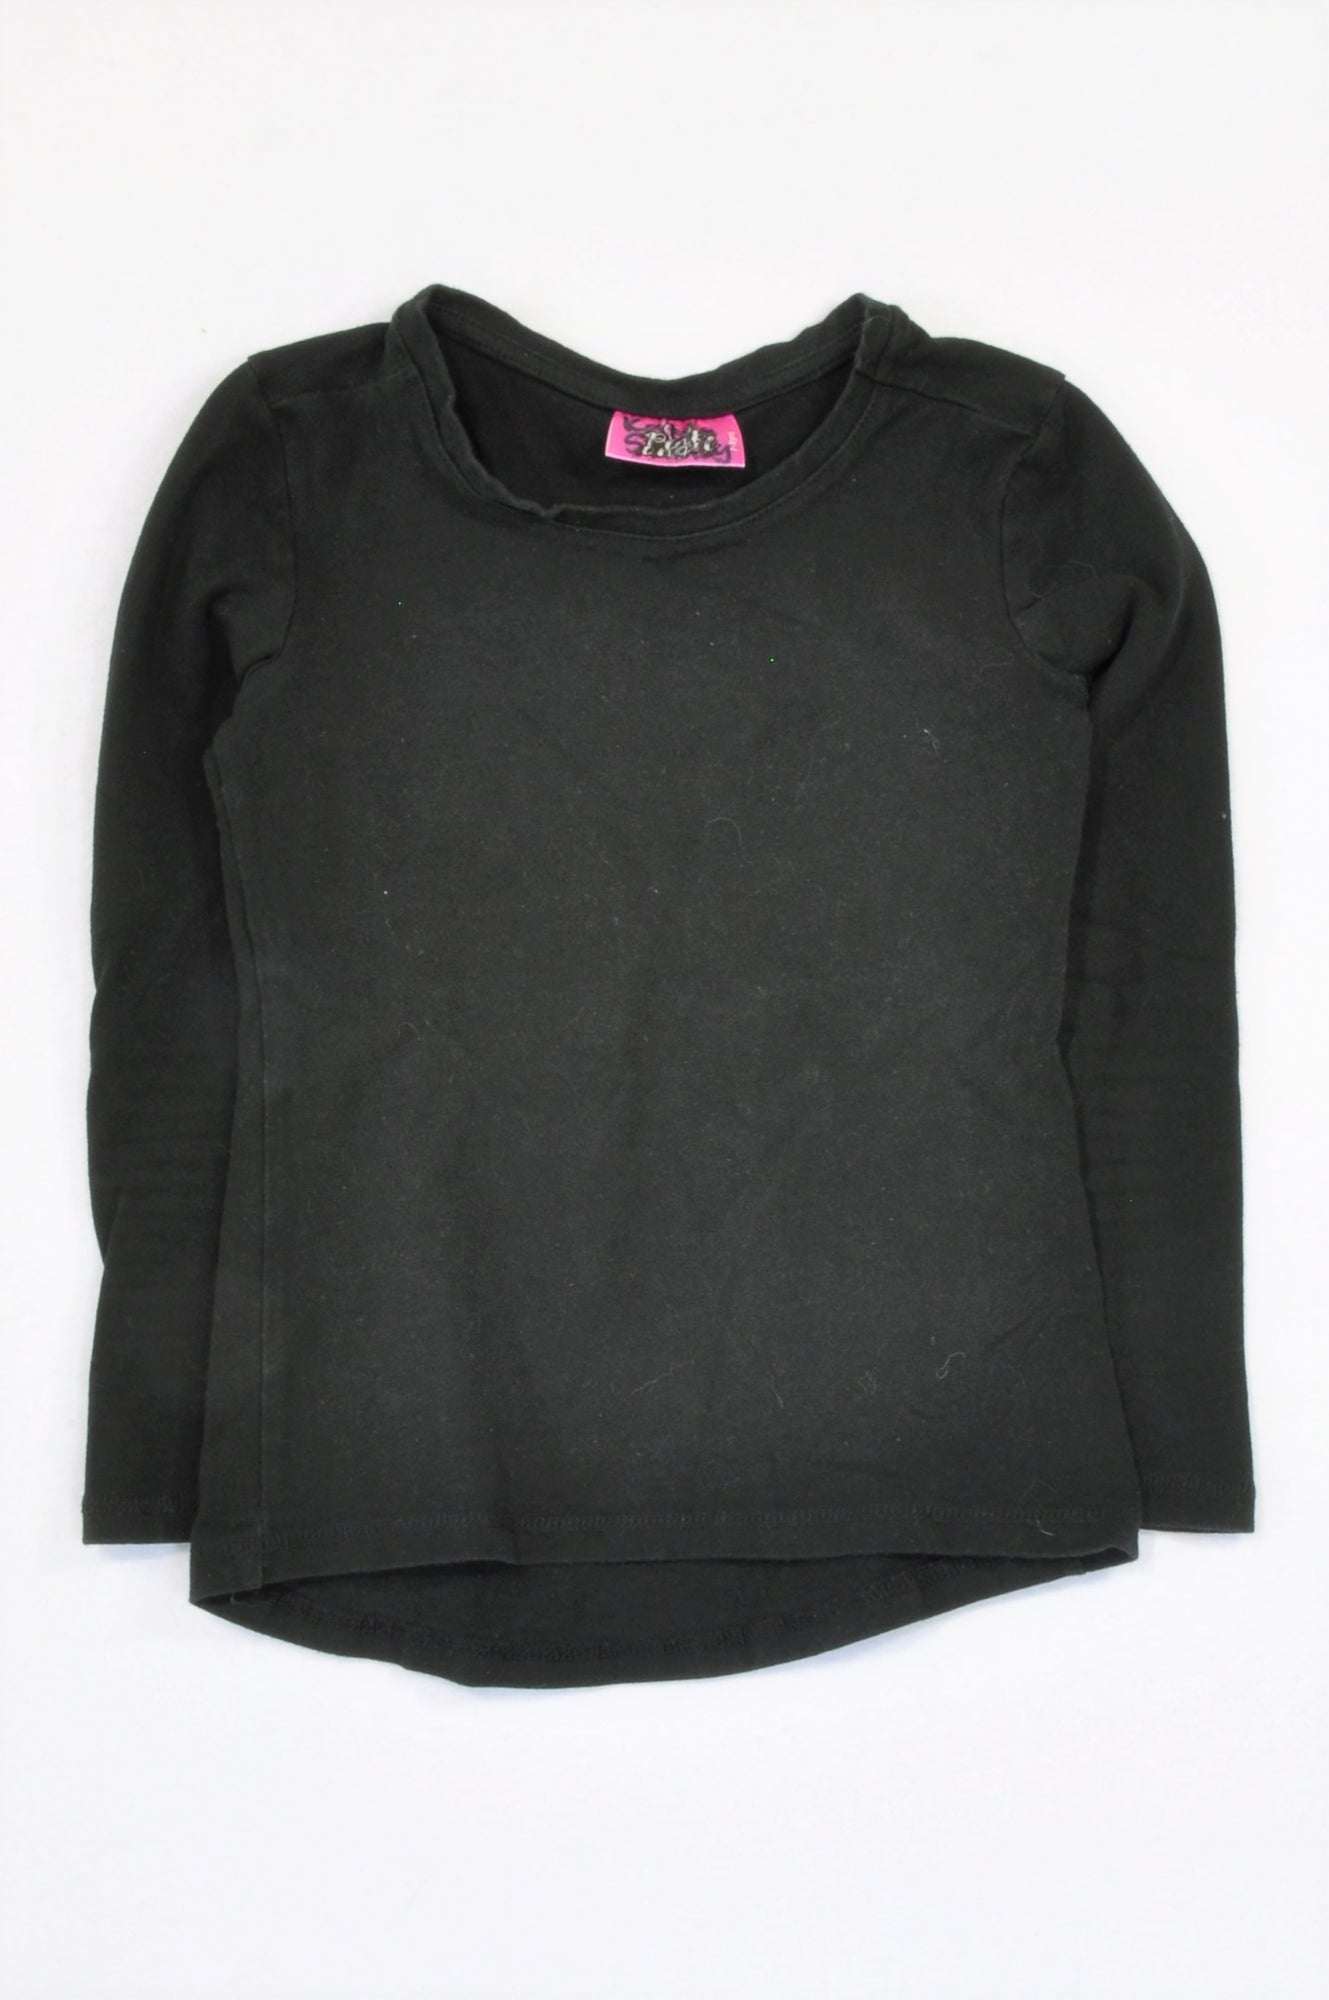 Pink Angel Basic Black T-shirt Girls 7-8 years